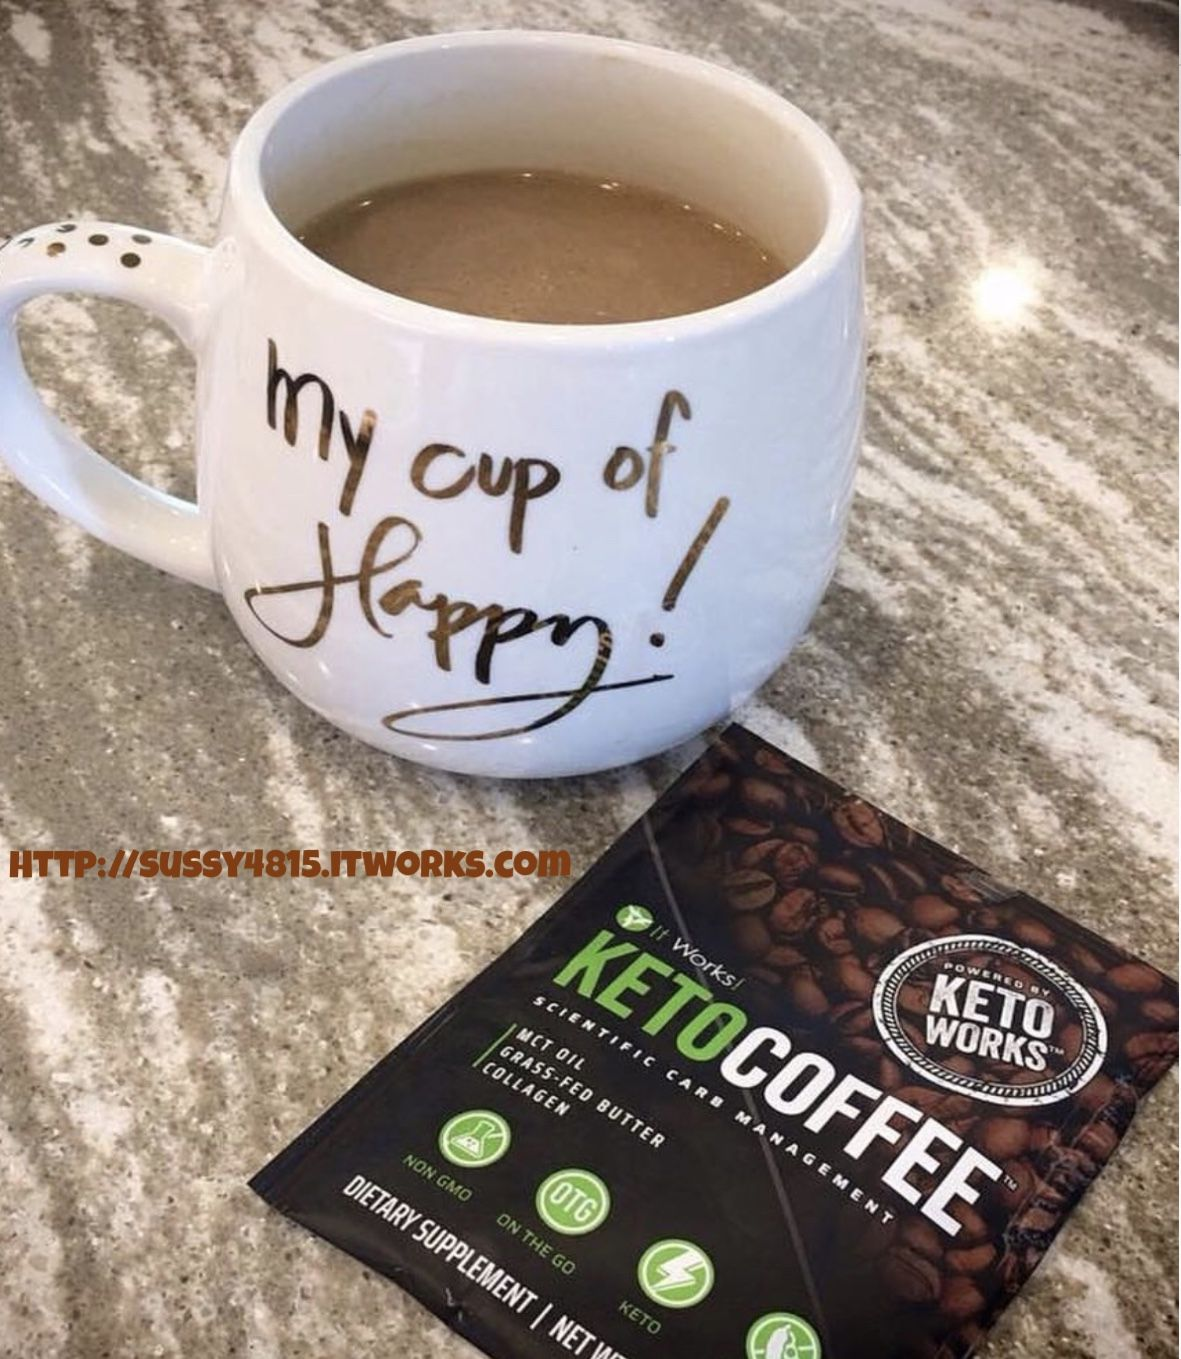 Receive 40 Off Keto Coffee Helps Burn Fat Lose Weigh And Gives You